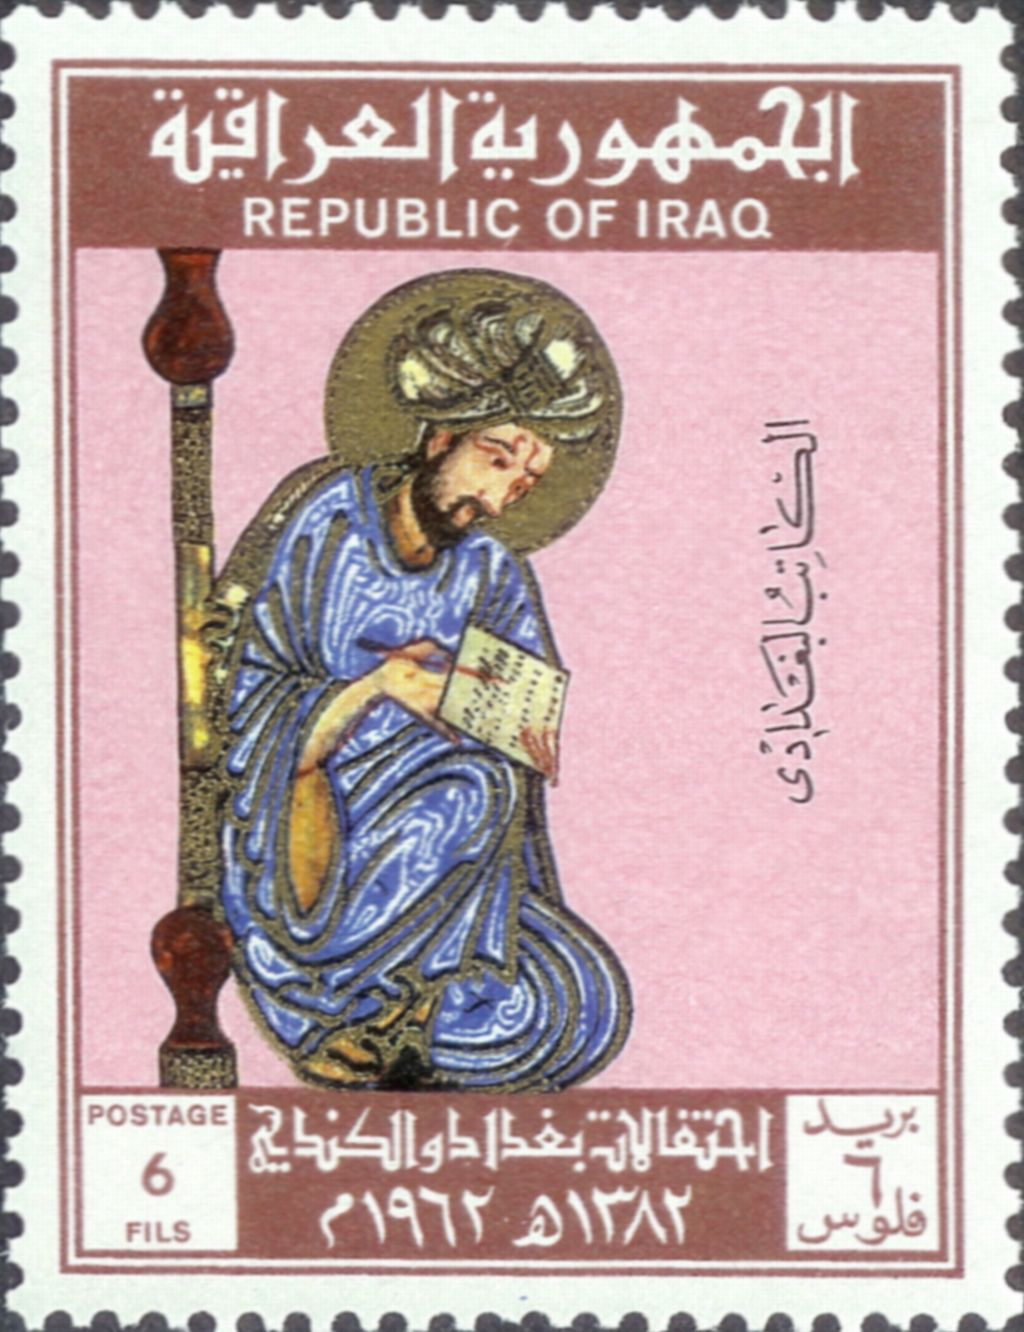 stamps muslim singles It that the us went into afghanistan and burned up every single bit of  he wants to force us to buy muslim stamps or he'll throw a hissy fit.